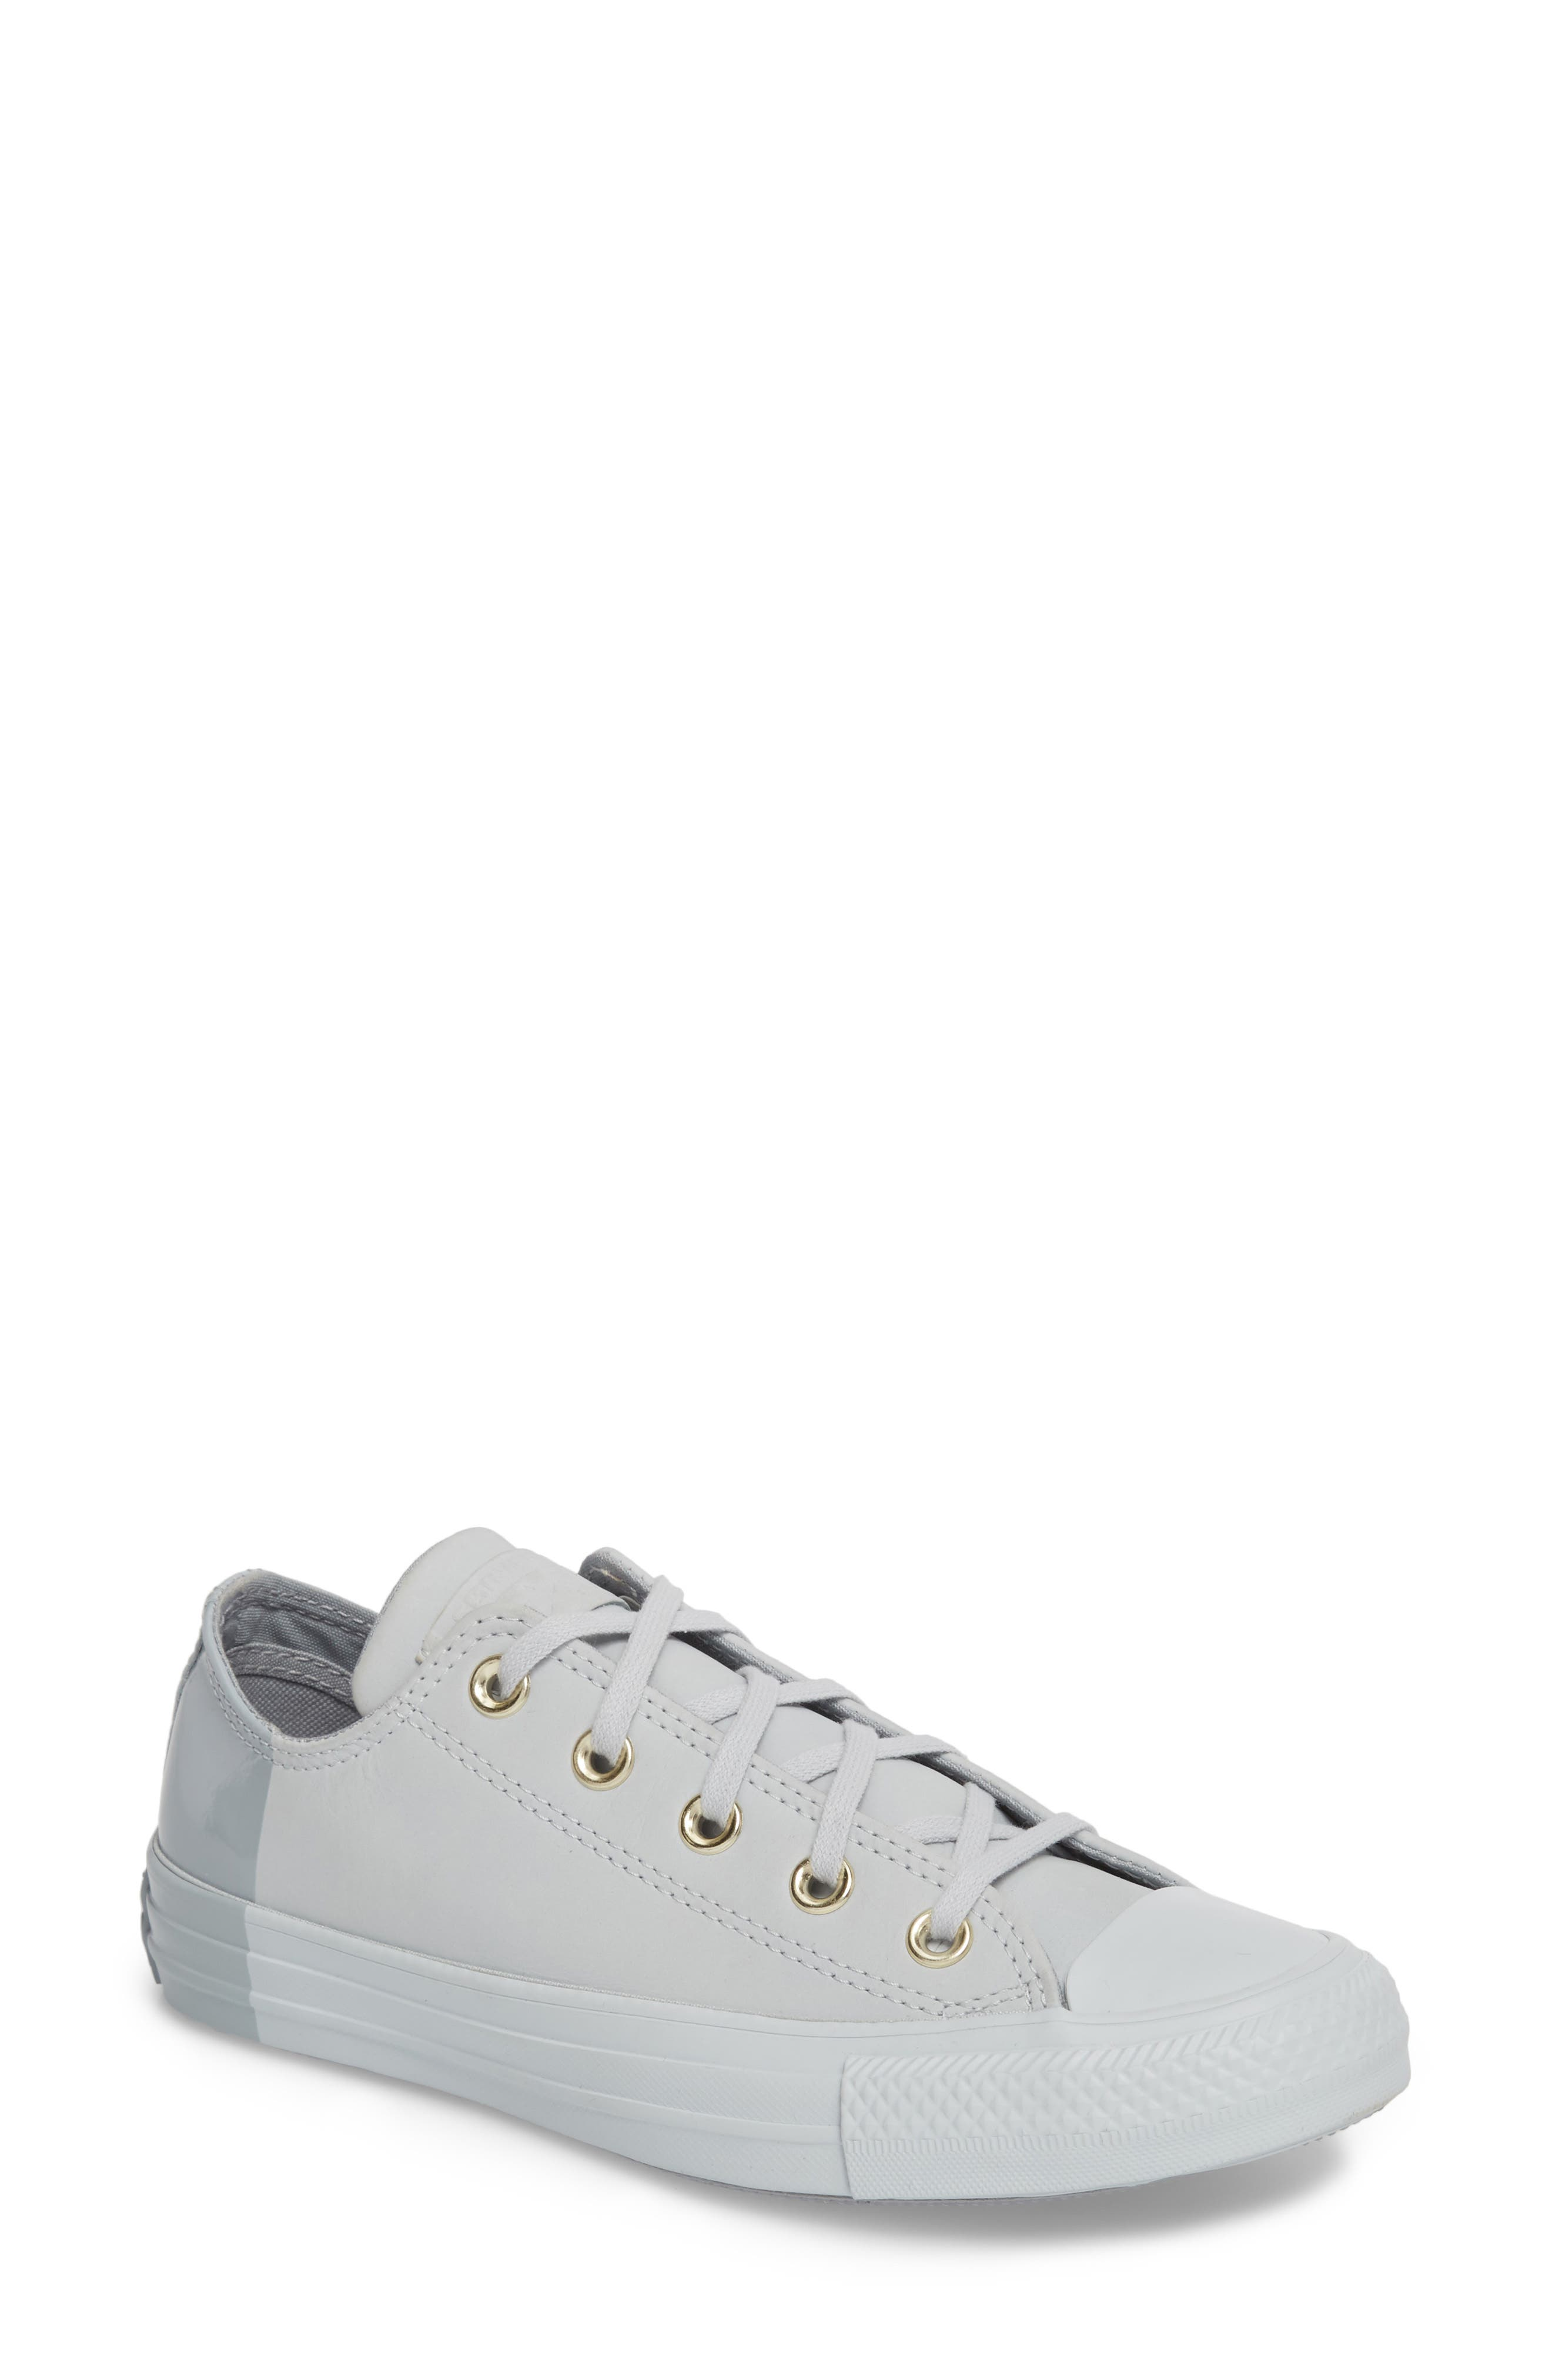 Chuck Taylor<sup>®</sup> All Star<sup>®</sup> Colorblock Ox Sneaker,                             Main thumbnail 1, color,                             082